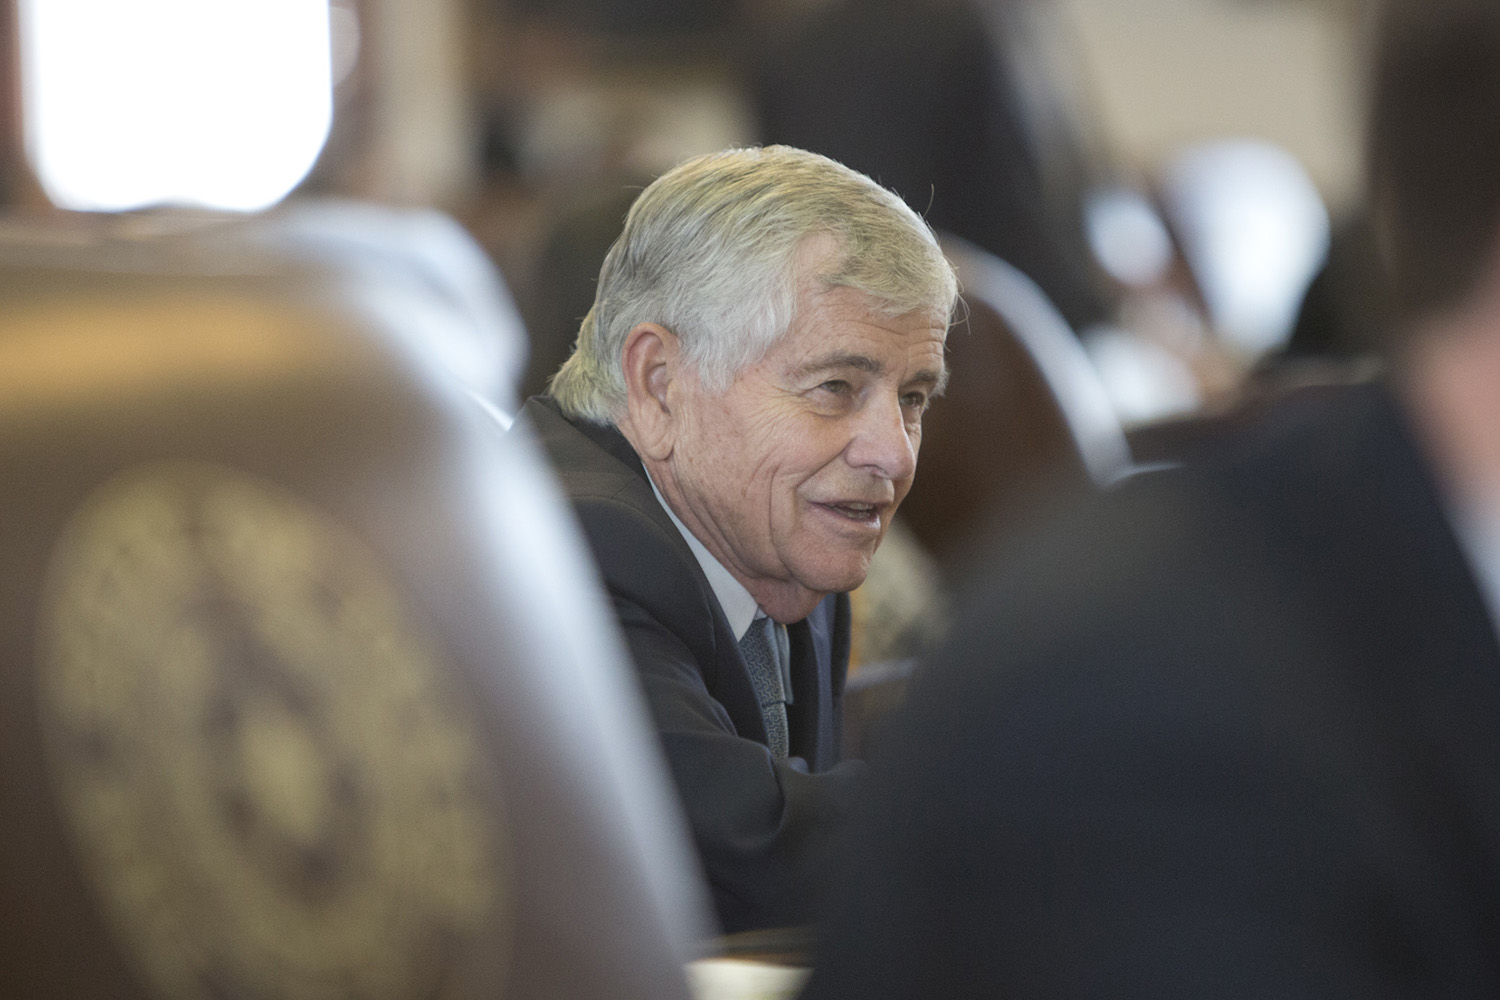 State Rep. Tom Craddick, R-Midland, at his desk in the House after passage of House Bill 62 — a statewide ban on texting while driving — on May 19, 2017.